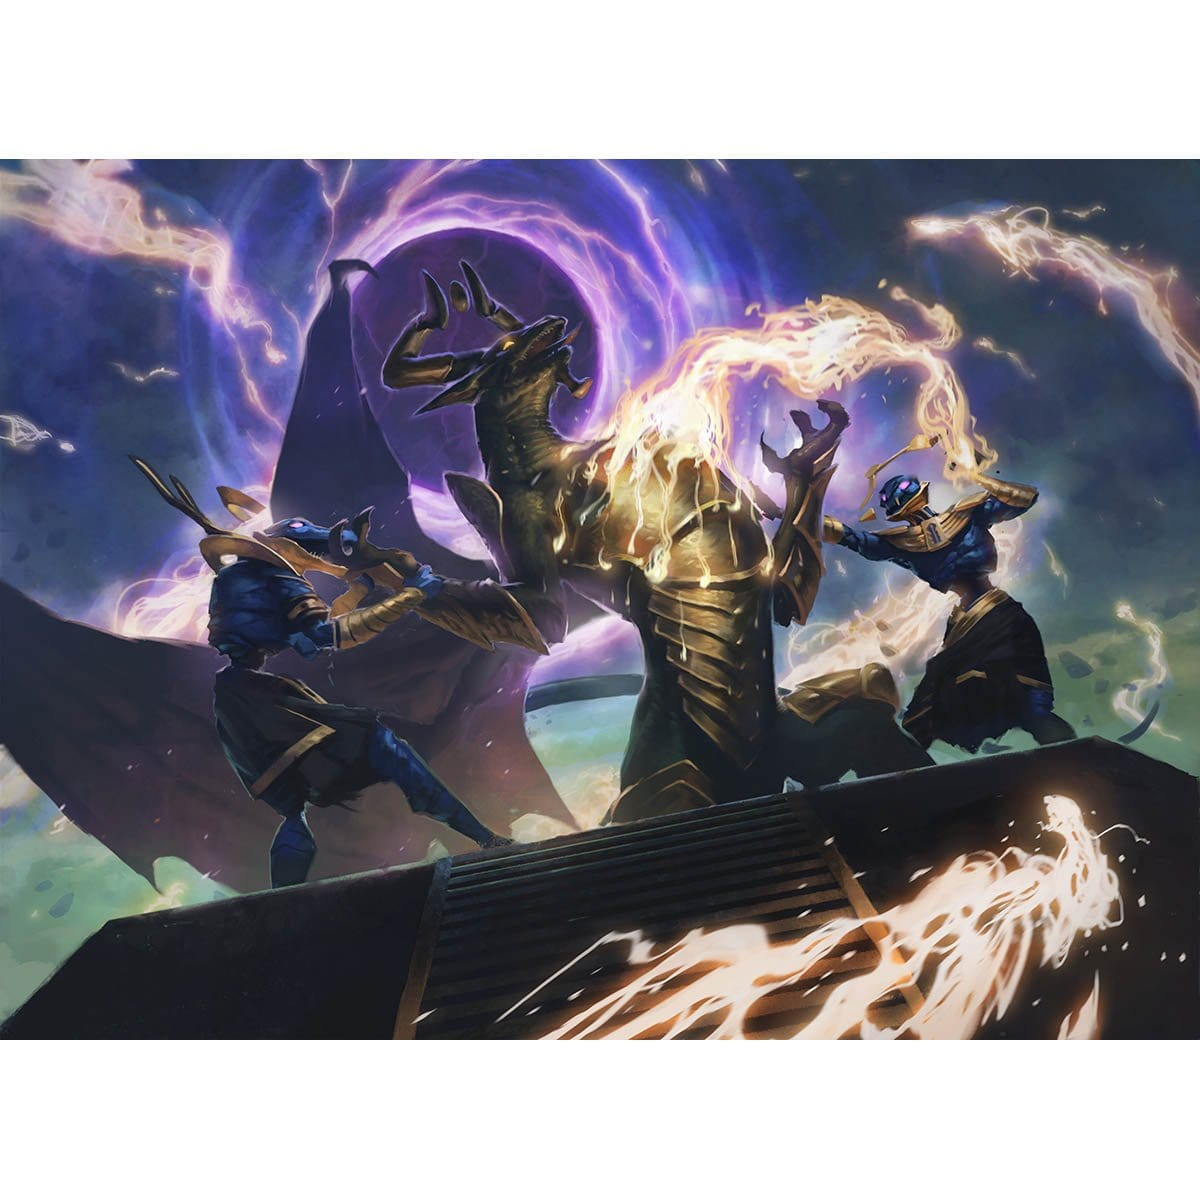 Despark Print - Print - Original Magic Art - Accessories for Magic the Gathering and other card games